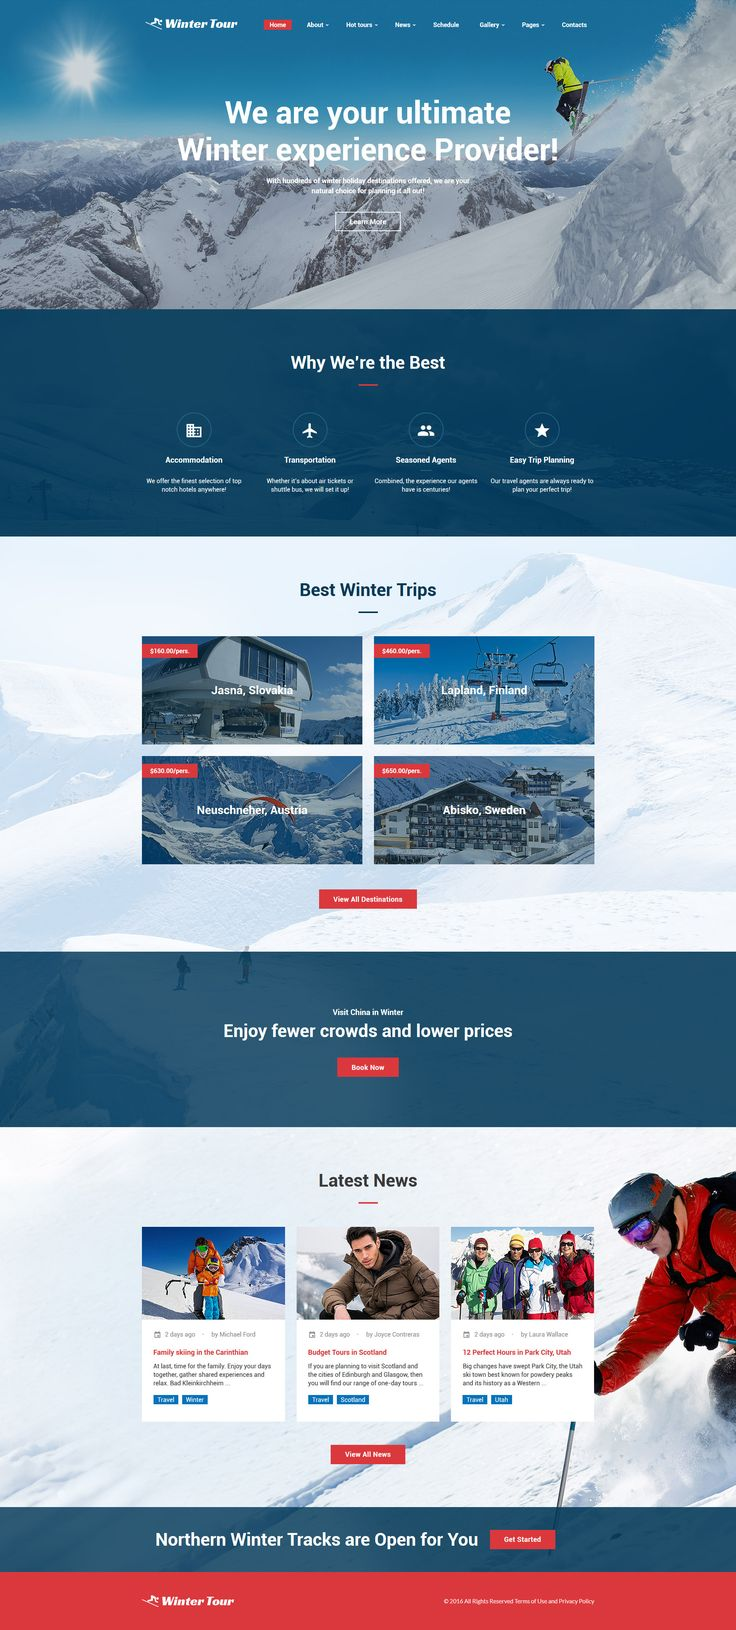 Travel Agency Responsive Website Template - https://www.templatemonster.com/website-templates/travel-agency-responsive-website-template-61187.html